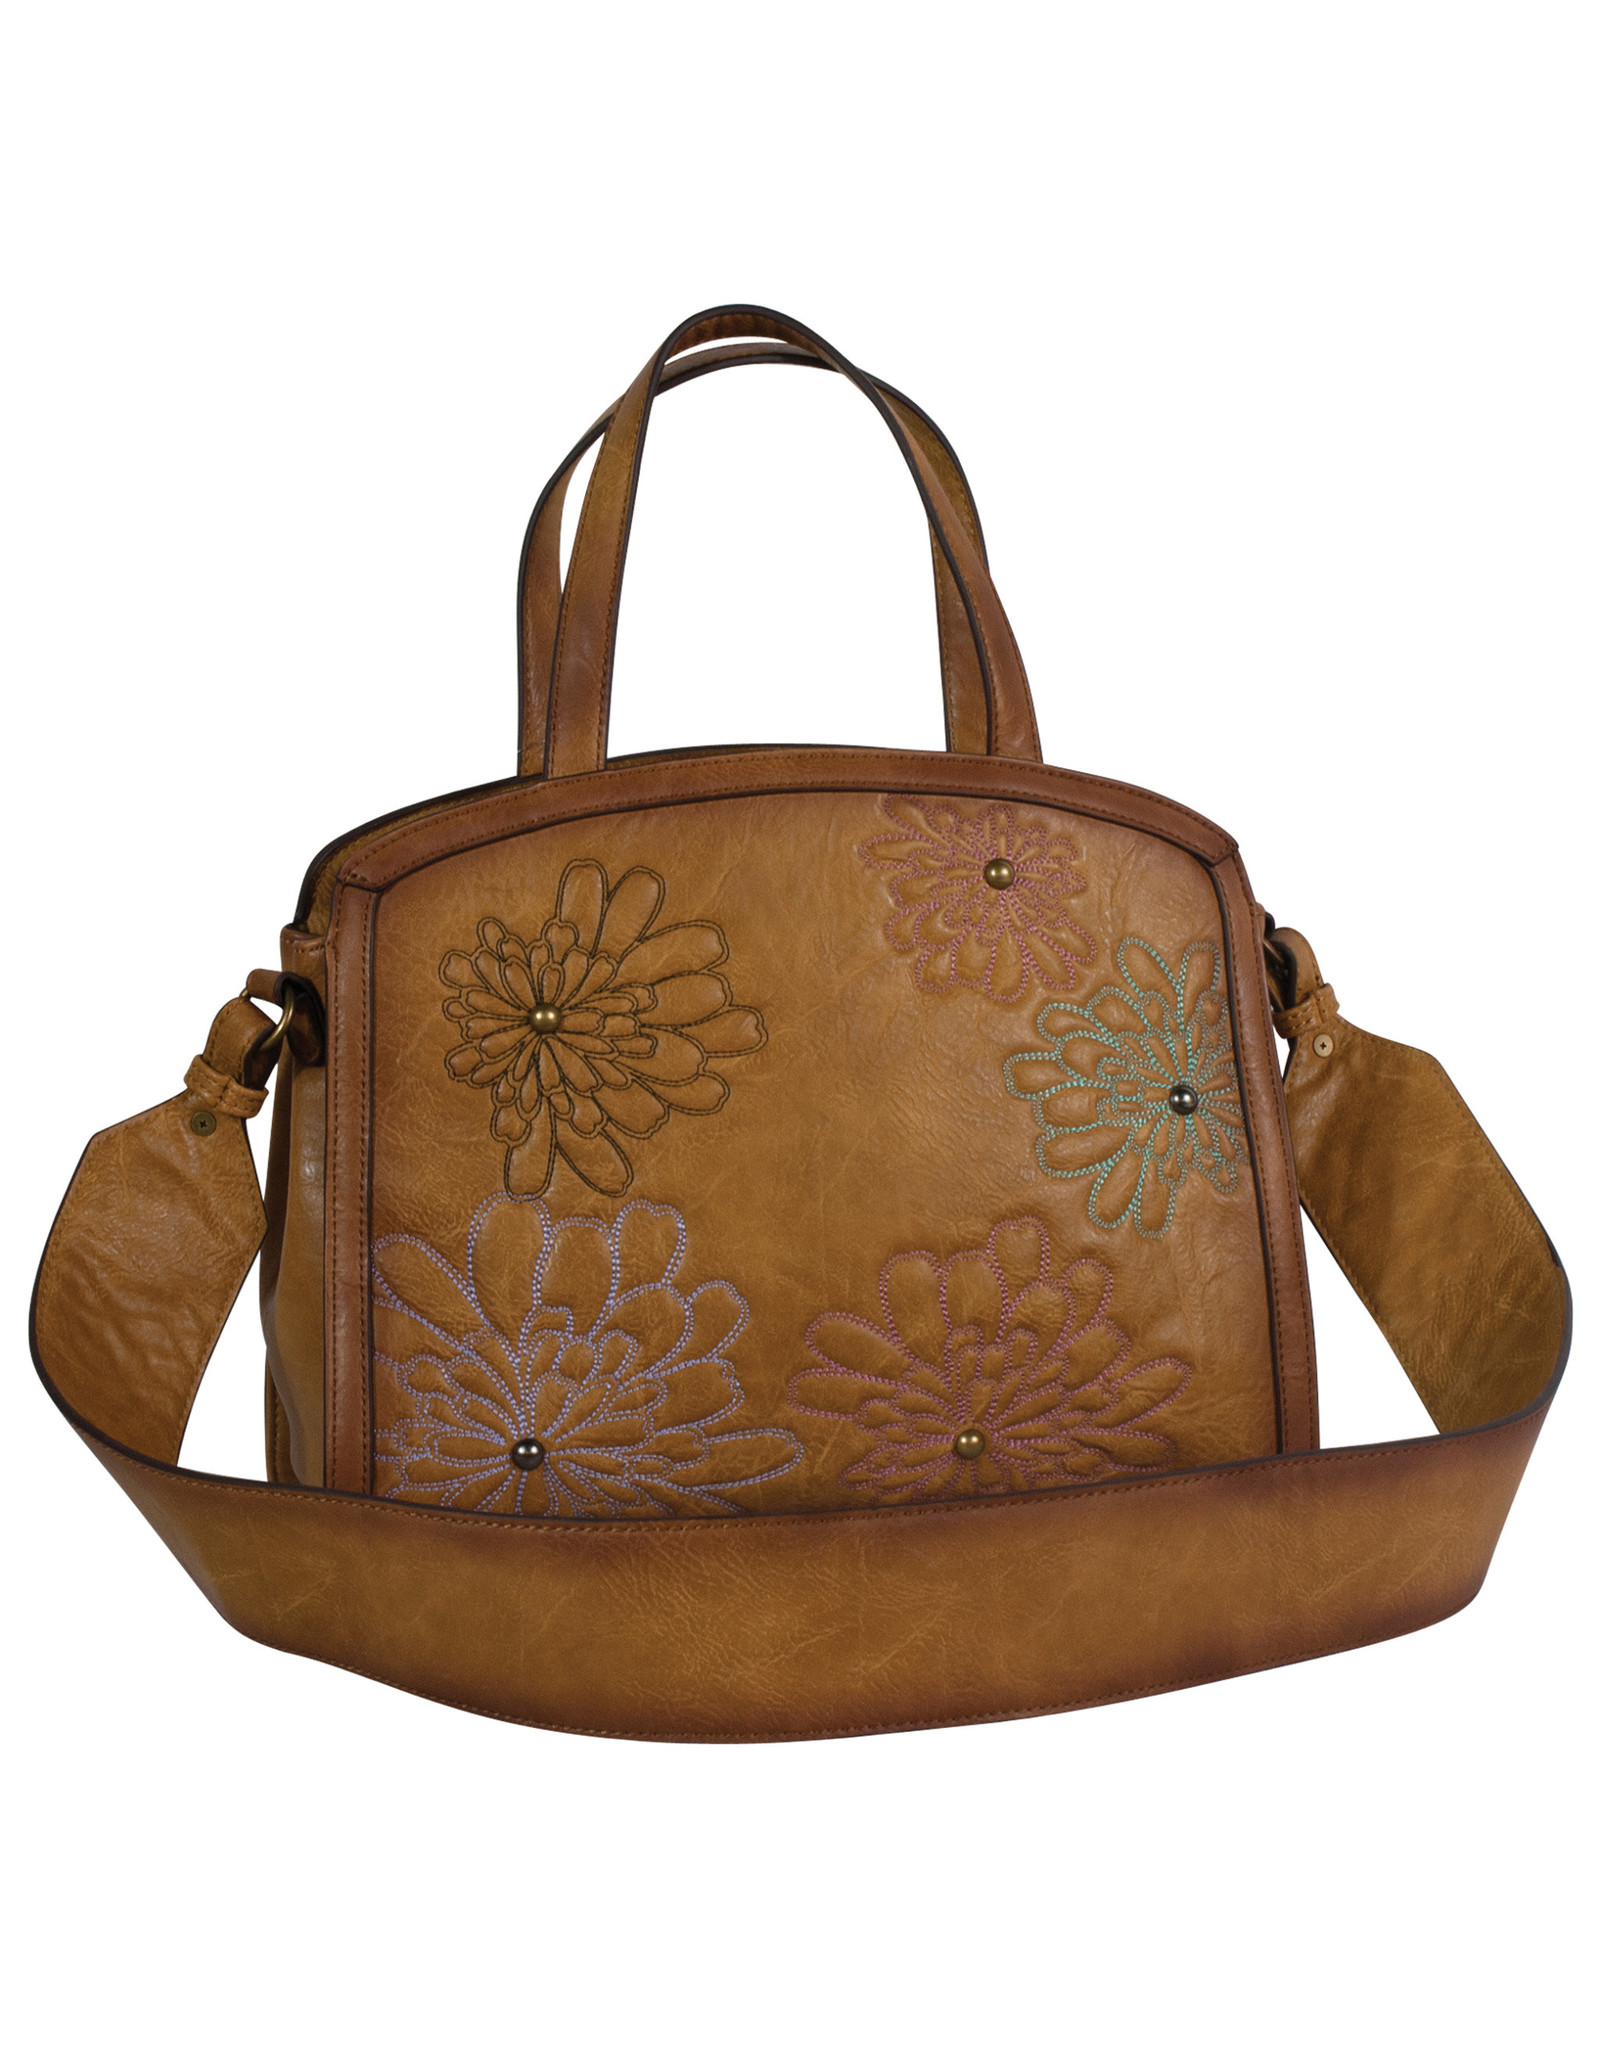 Catchfly 2010623 Catchfly Annie Small Tote - Flower Embroidery